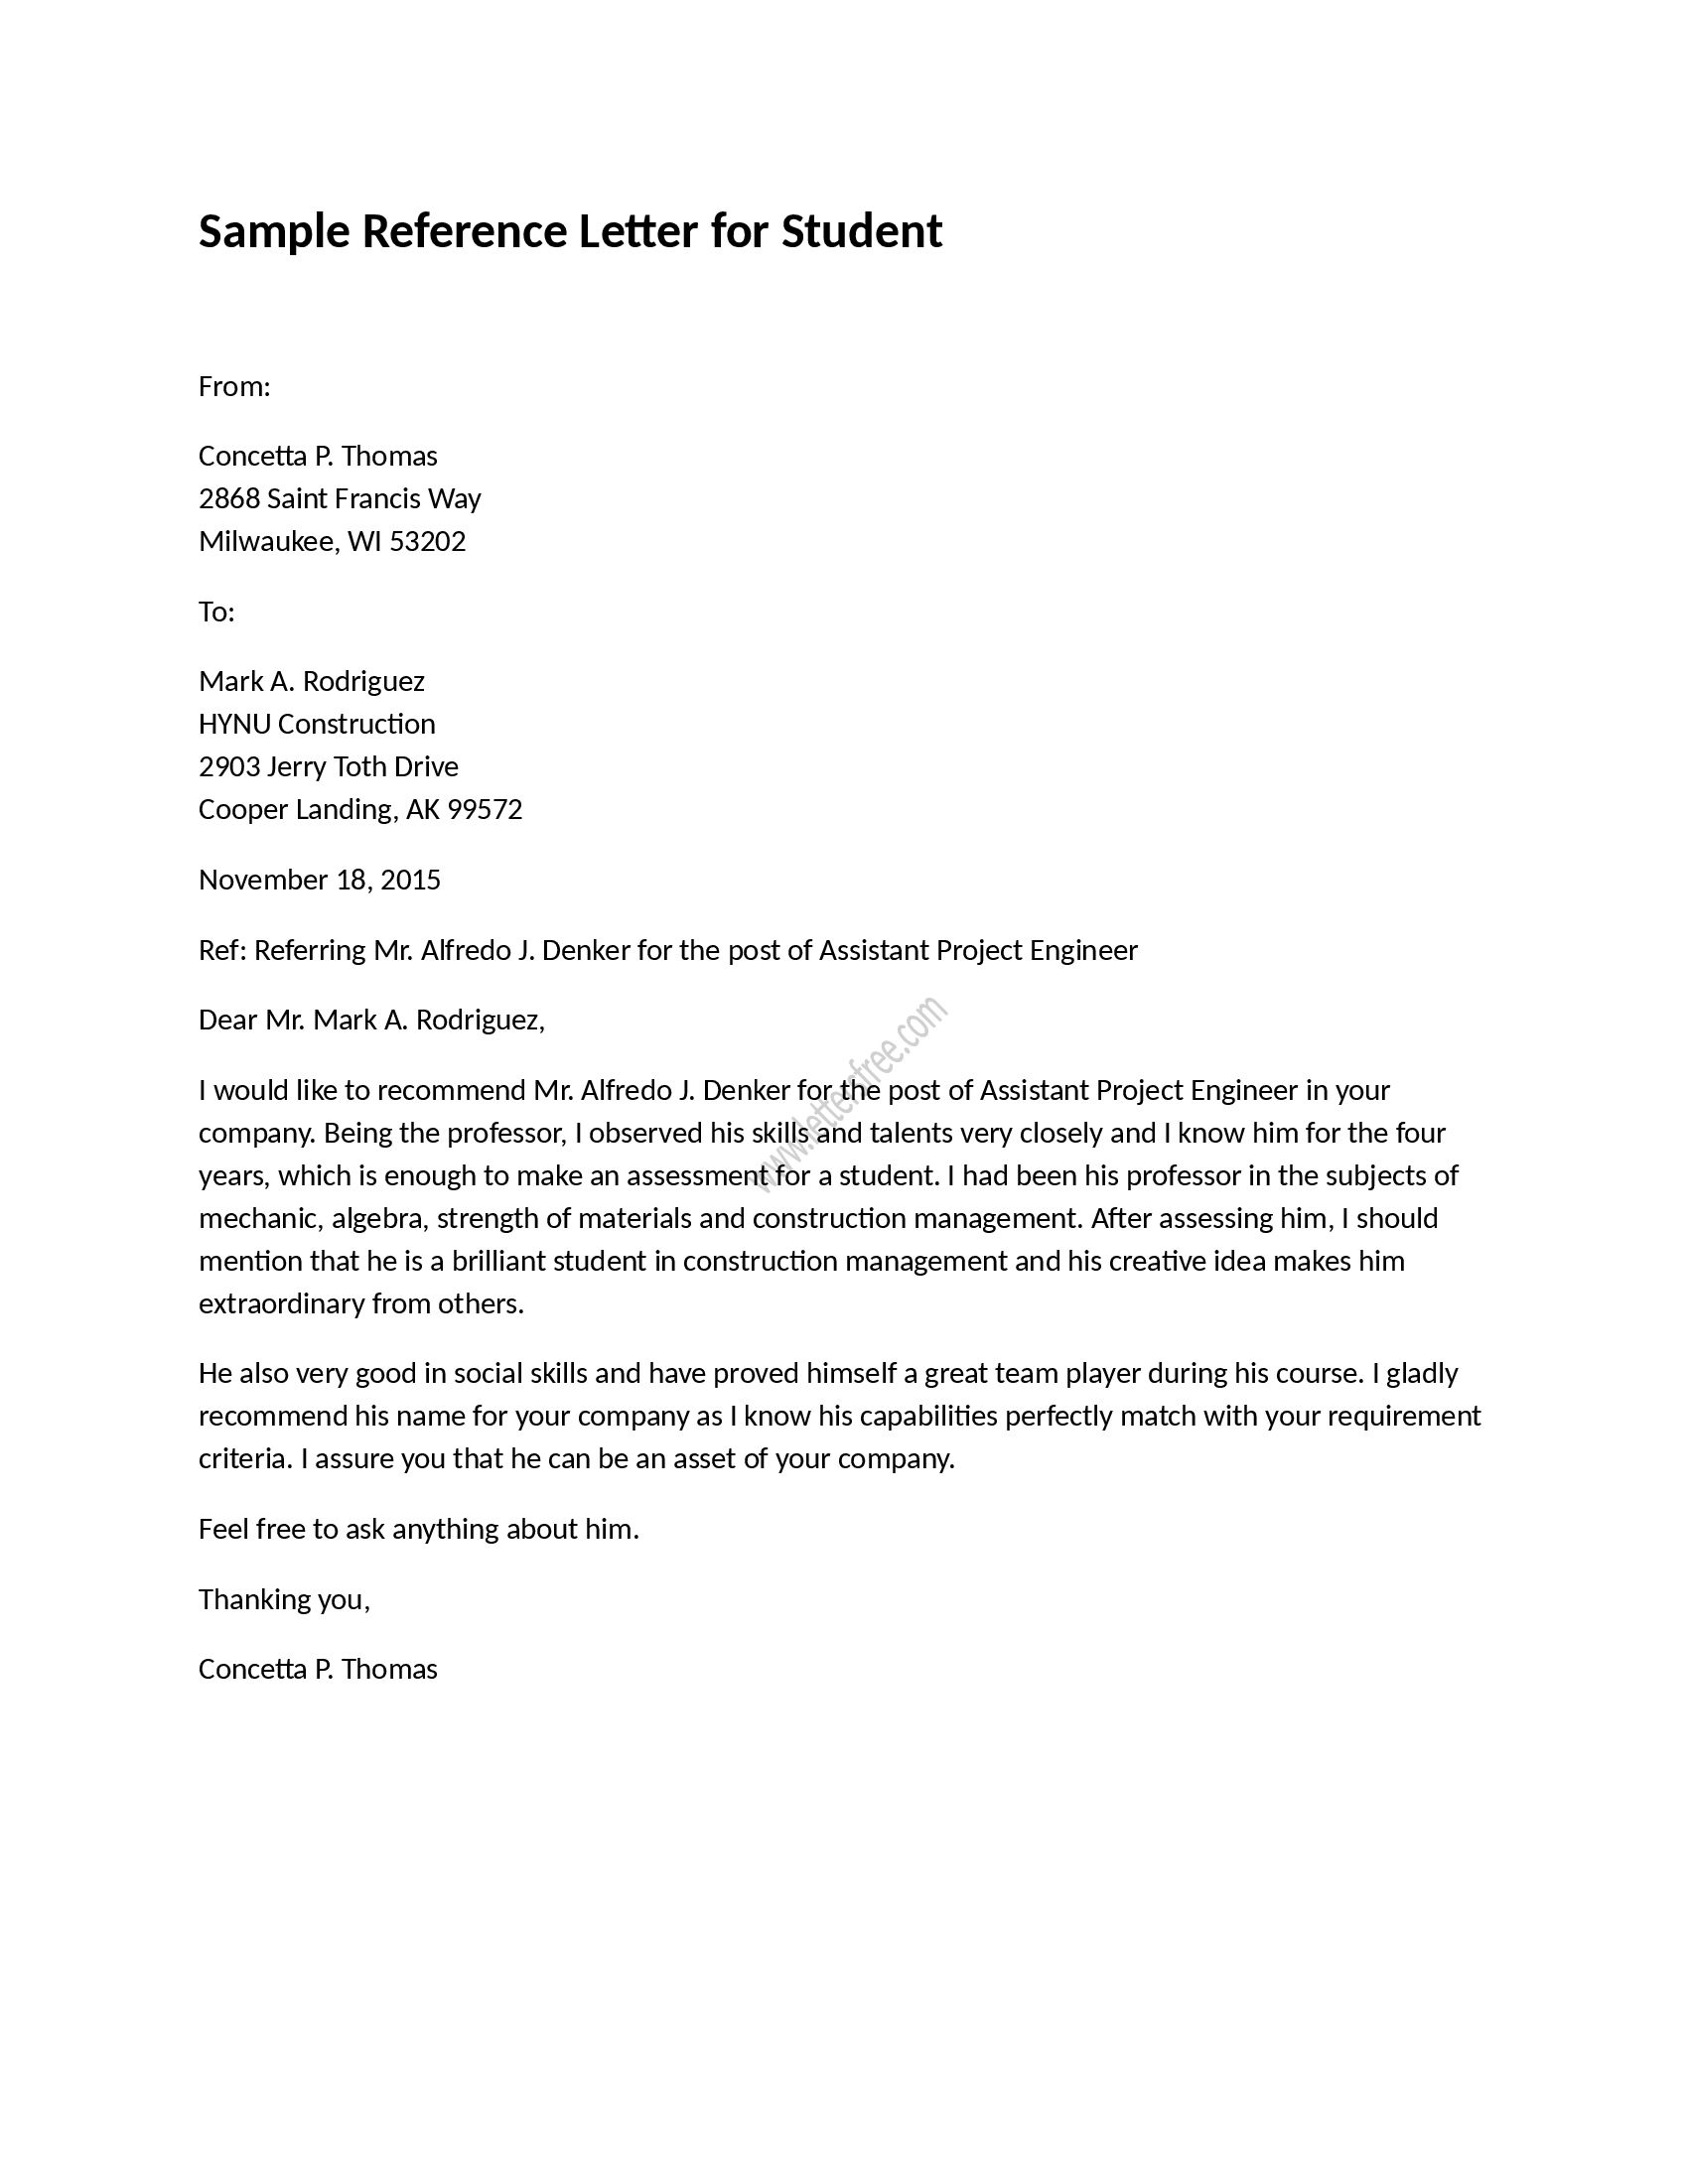 Reference letter for student reference letter sample pinterest sample reference letter for student is written to refer a student for a certain post of a company on the basis of hisher academic performances expocarfo Images